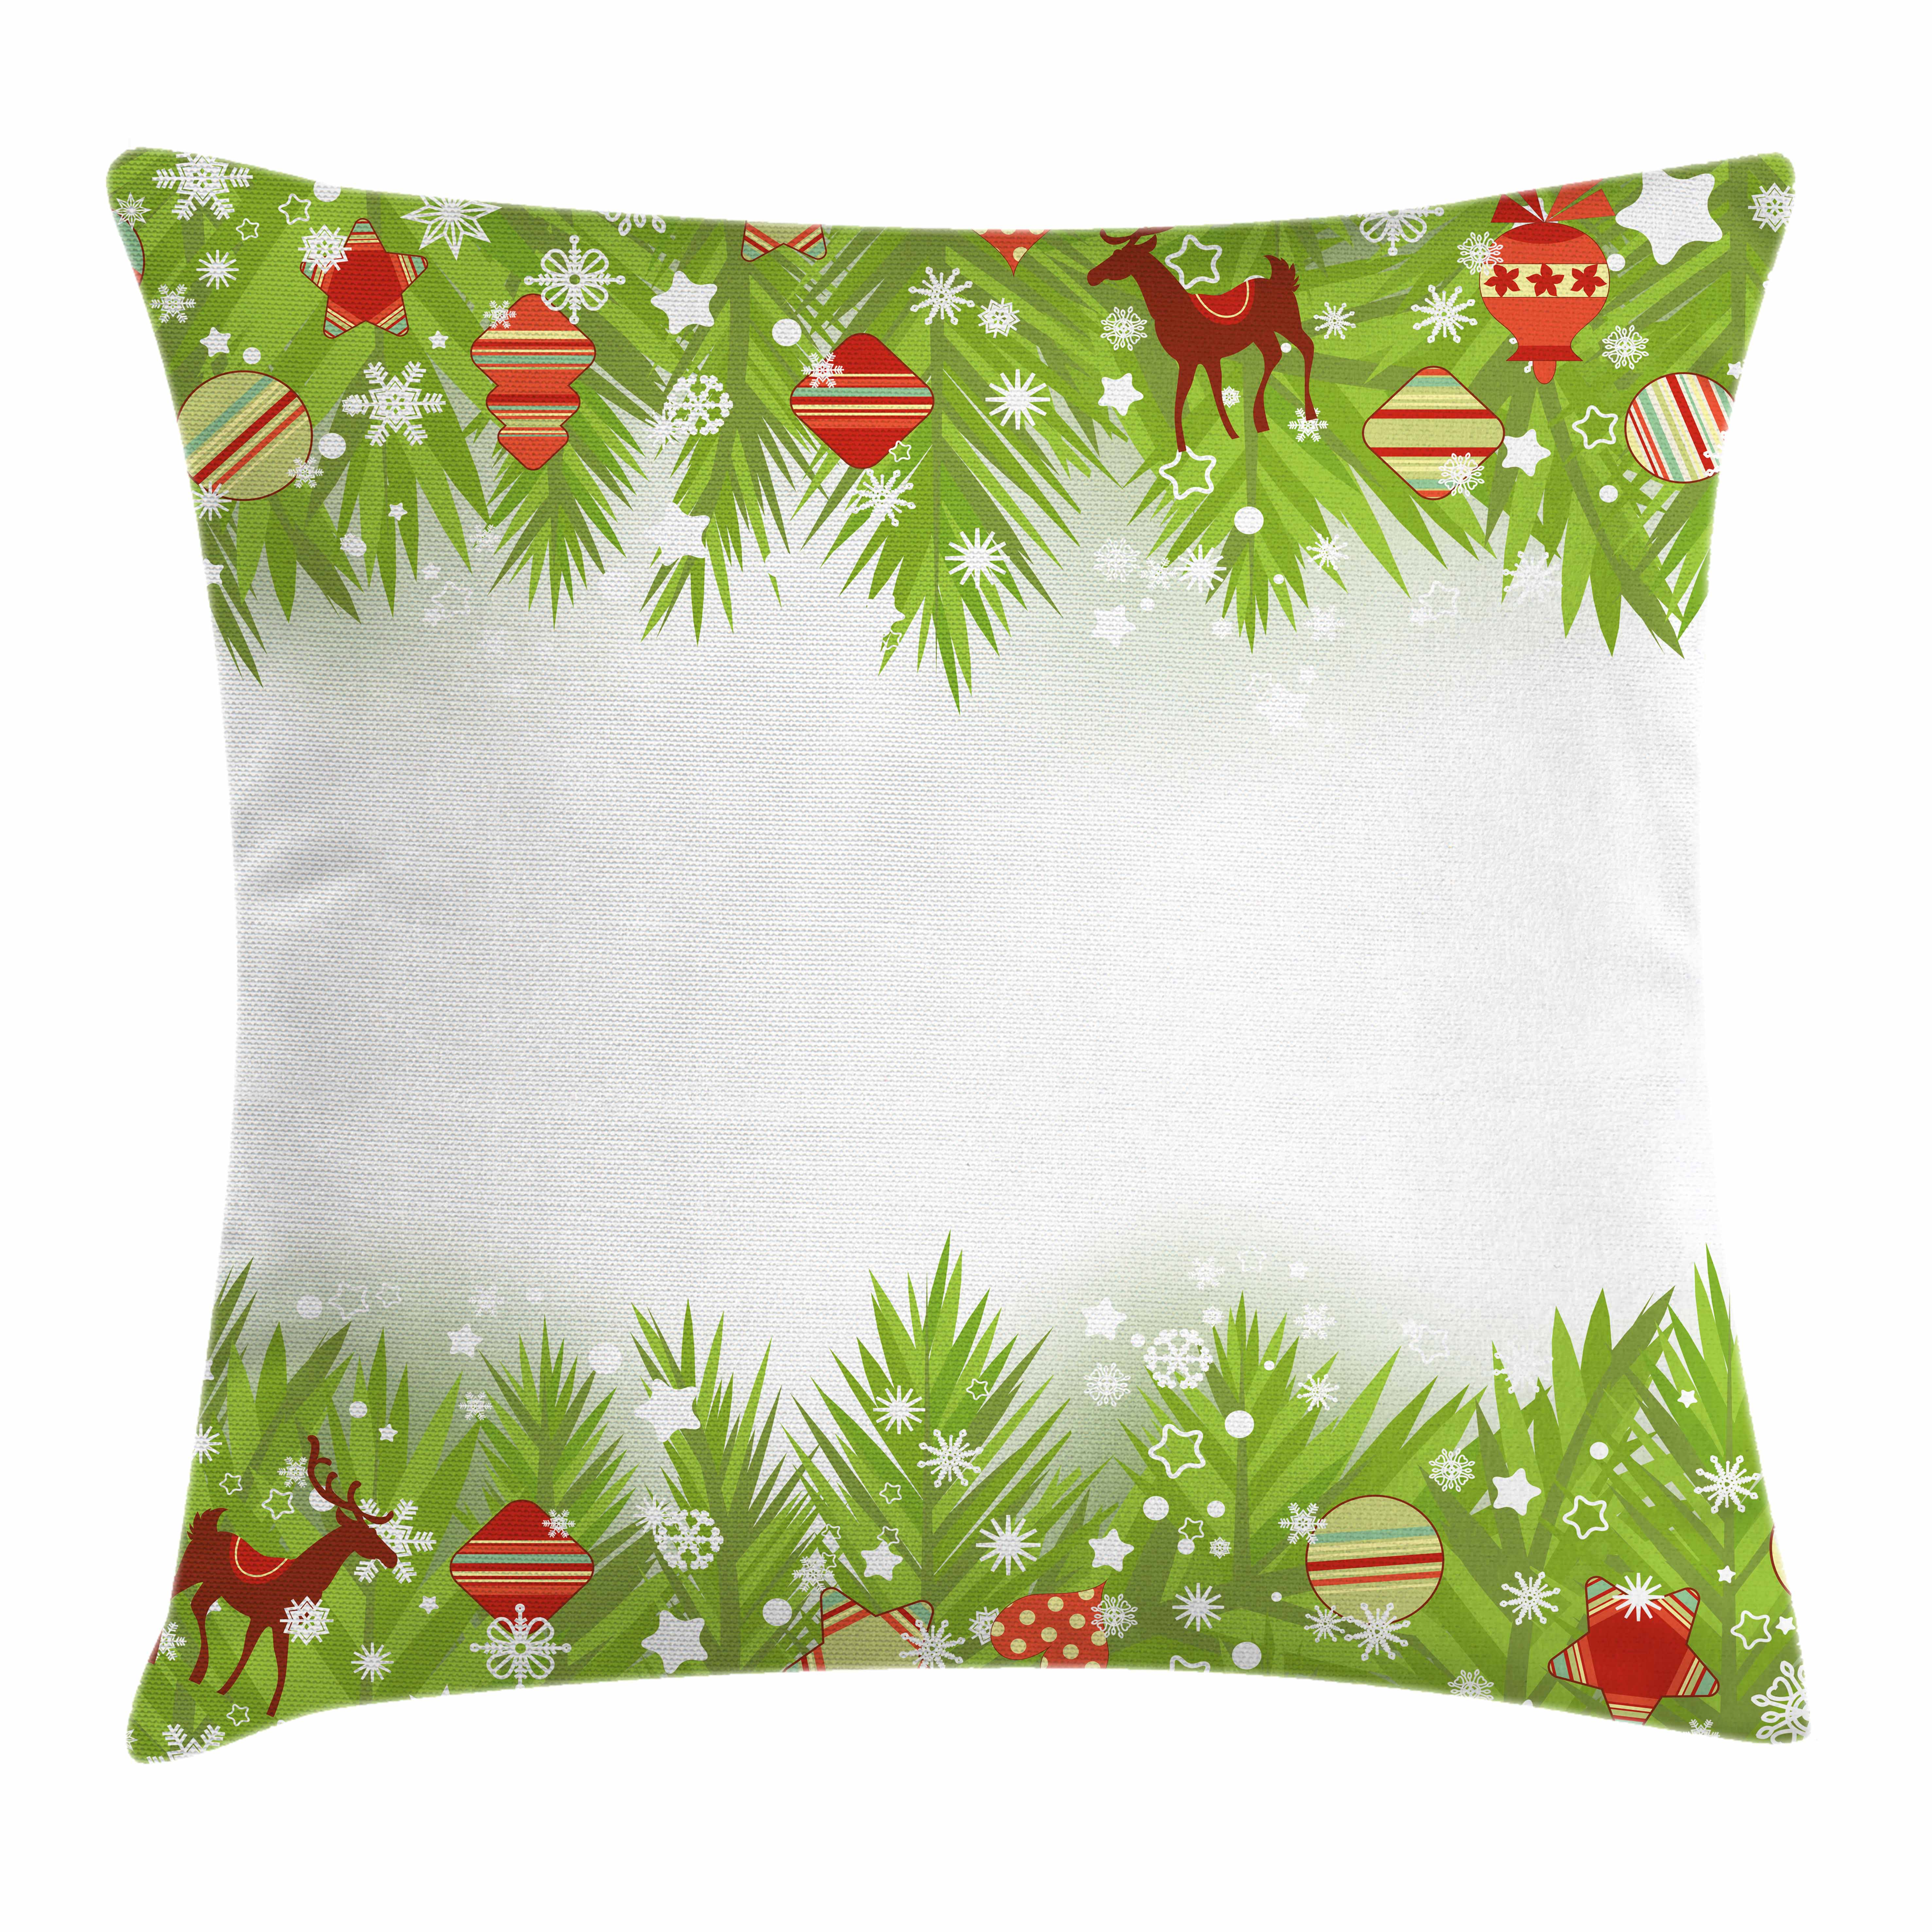 Kids Christmas Throw Pillow Cushion Cover Spruce Coniferous Noel